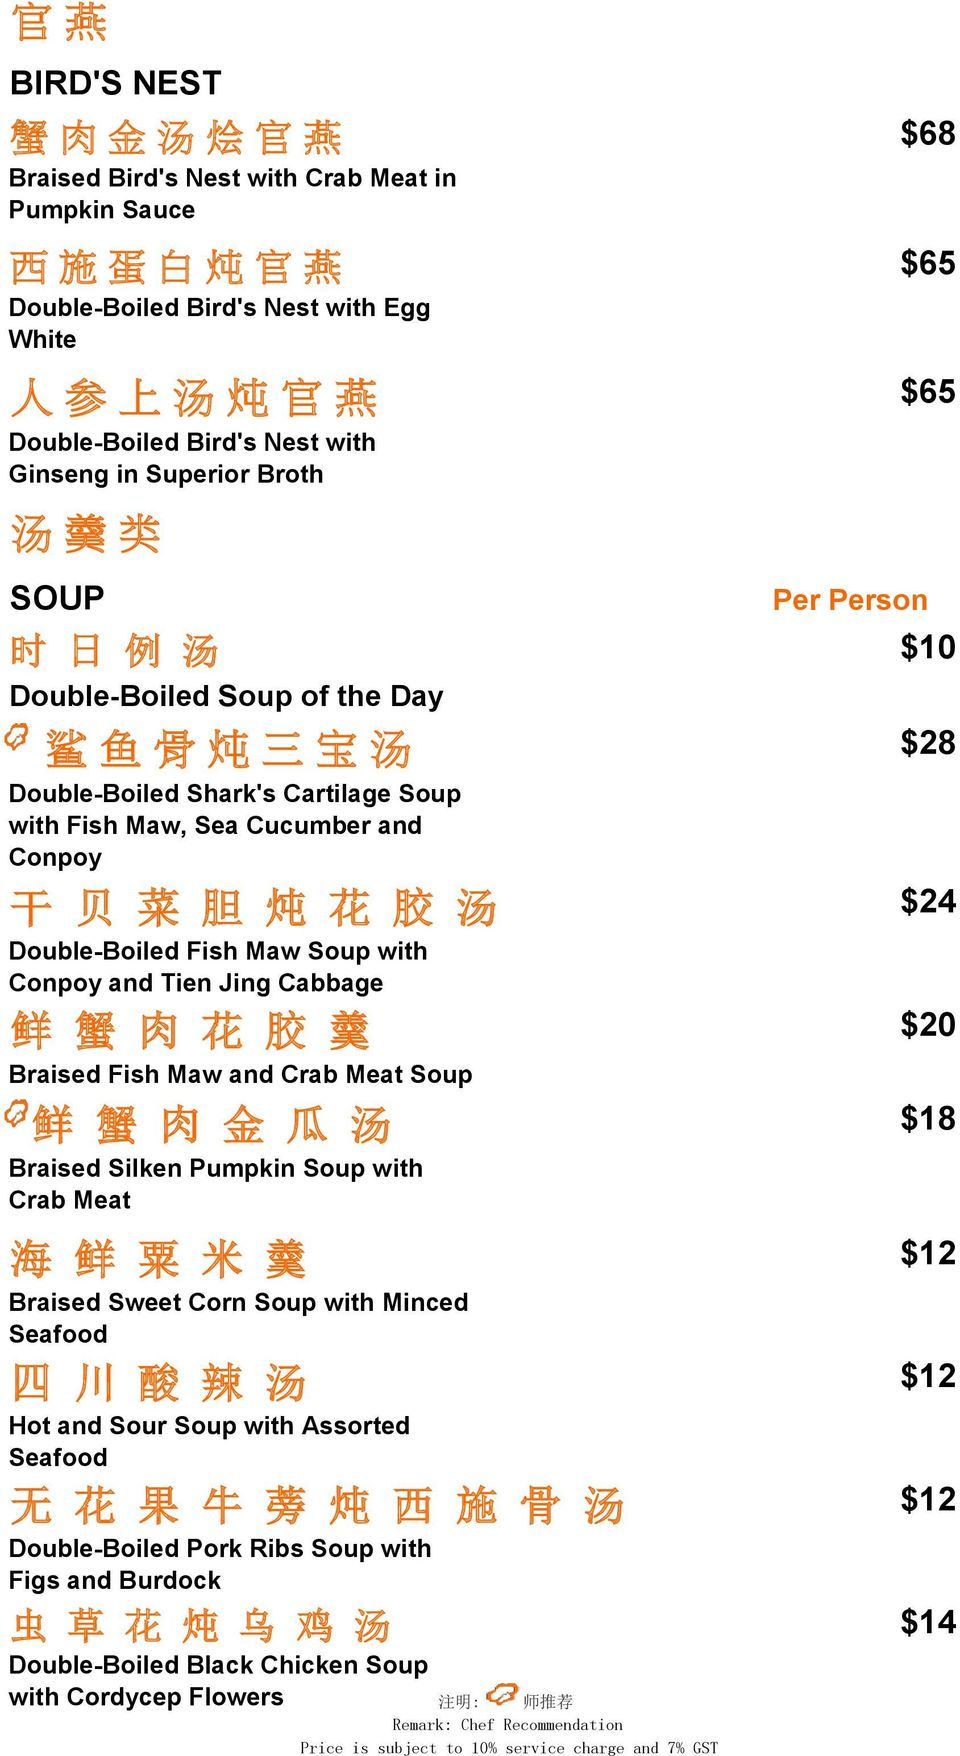 Double-Boiled Fish Maw Soup with Conpoy and Tien Jing Cabbage 鲜 蟹 肉 花 胶 羹 $20 Braised Fish Maw and Crab Meat Soup 鲜 蟹 肉 金 瓜 汤 $18 Braised Silken Pumpkin Soup with Crab Meat 海 鲜 粟 米 羹 $12 Braised